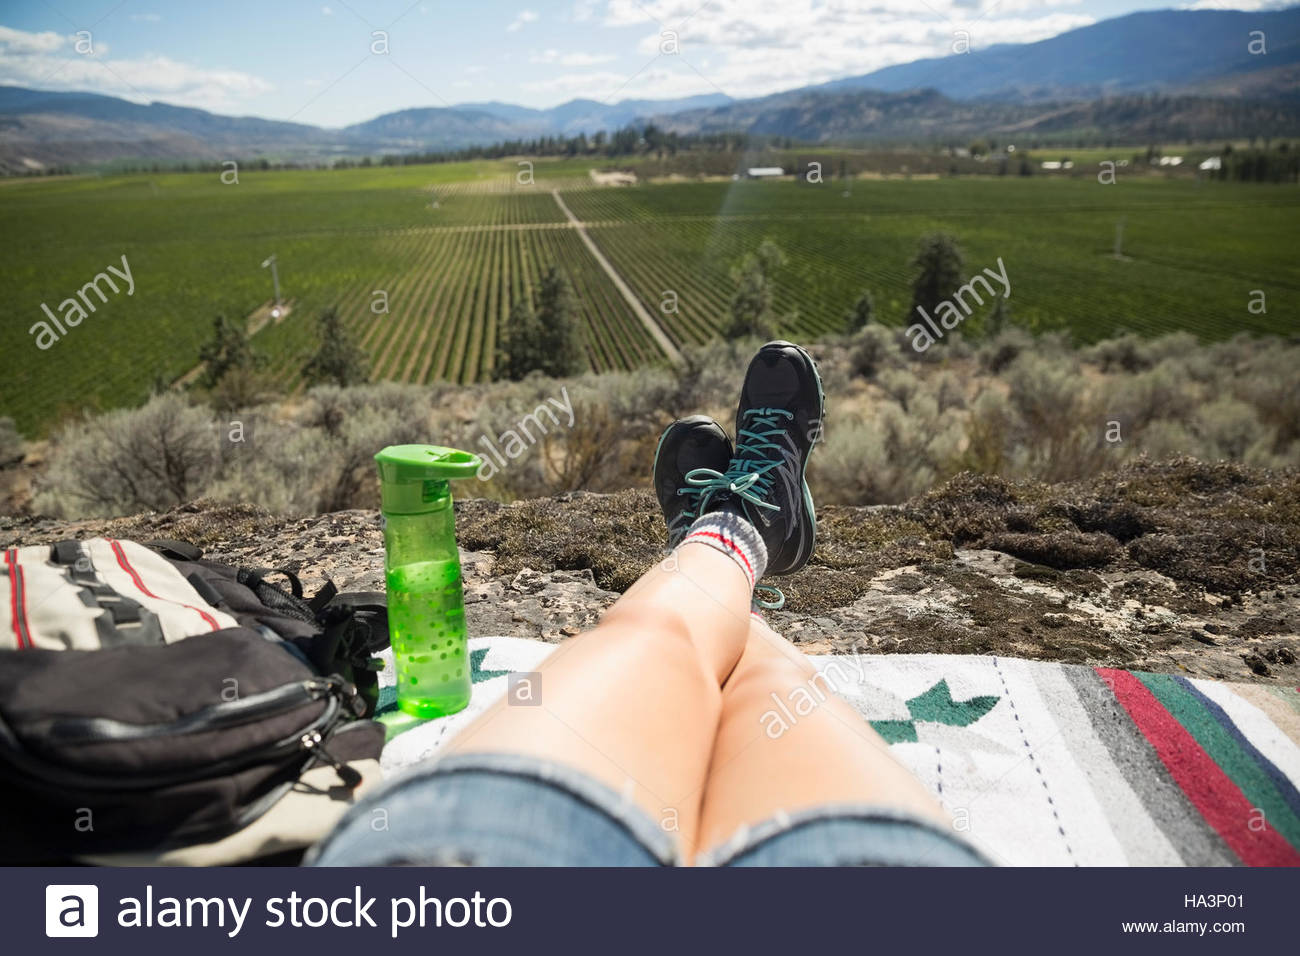 Personal perspective woman hiker relaxing looking at sunny rural view - Stock Image